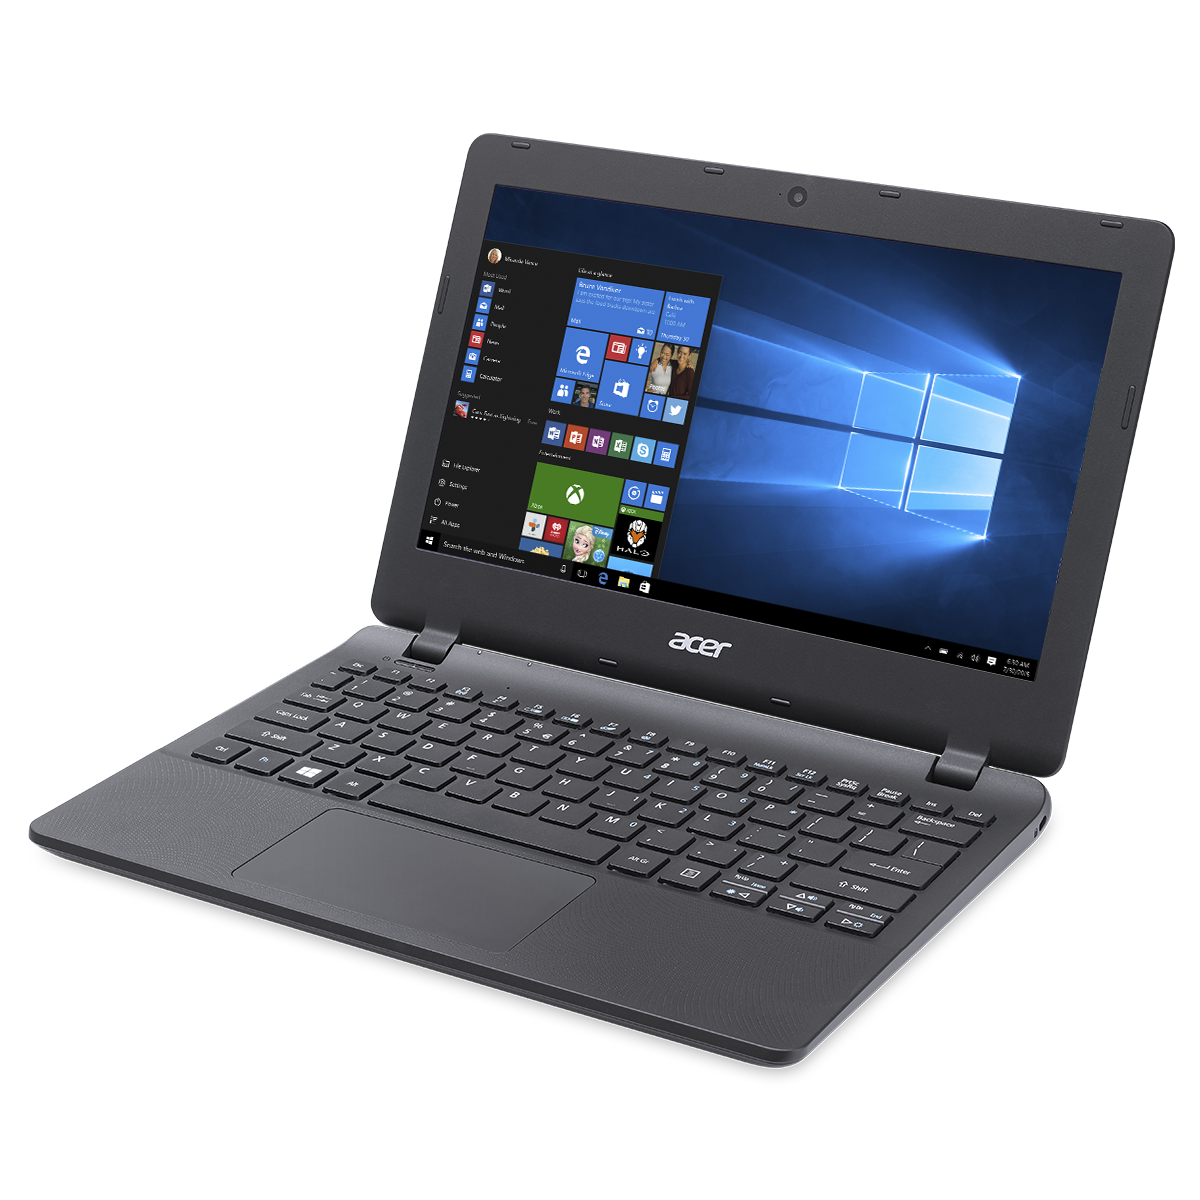 Watch How to Speed Up Acer Aspire One video